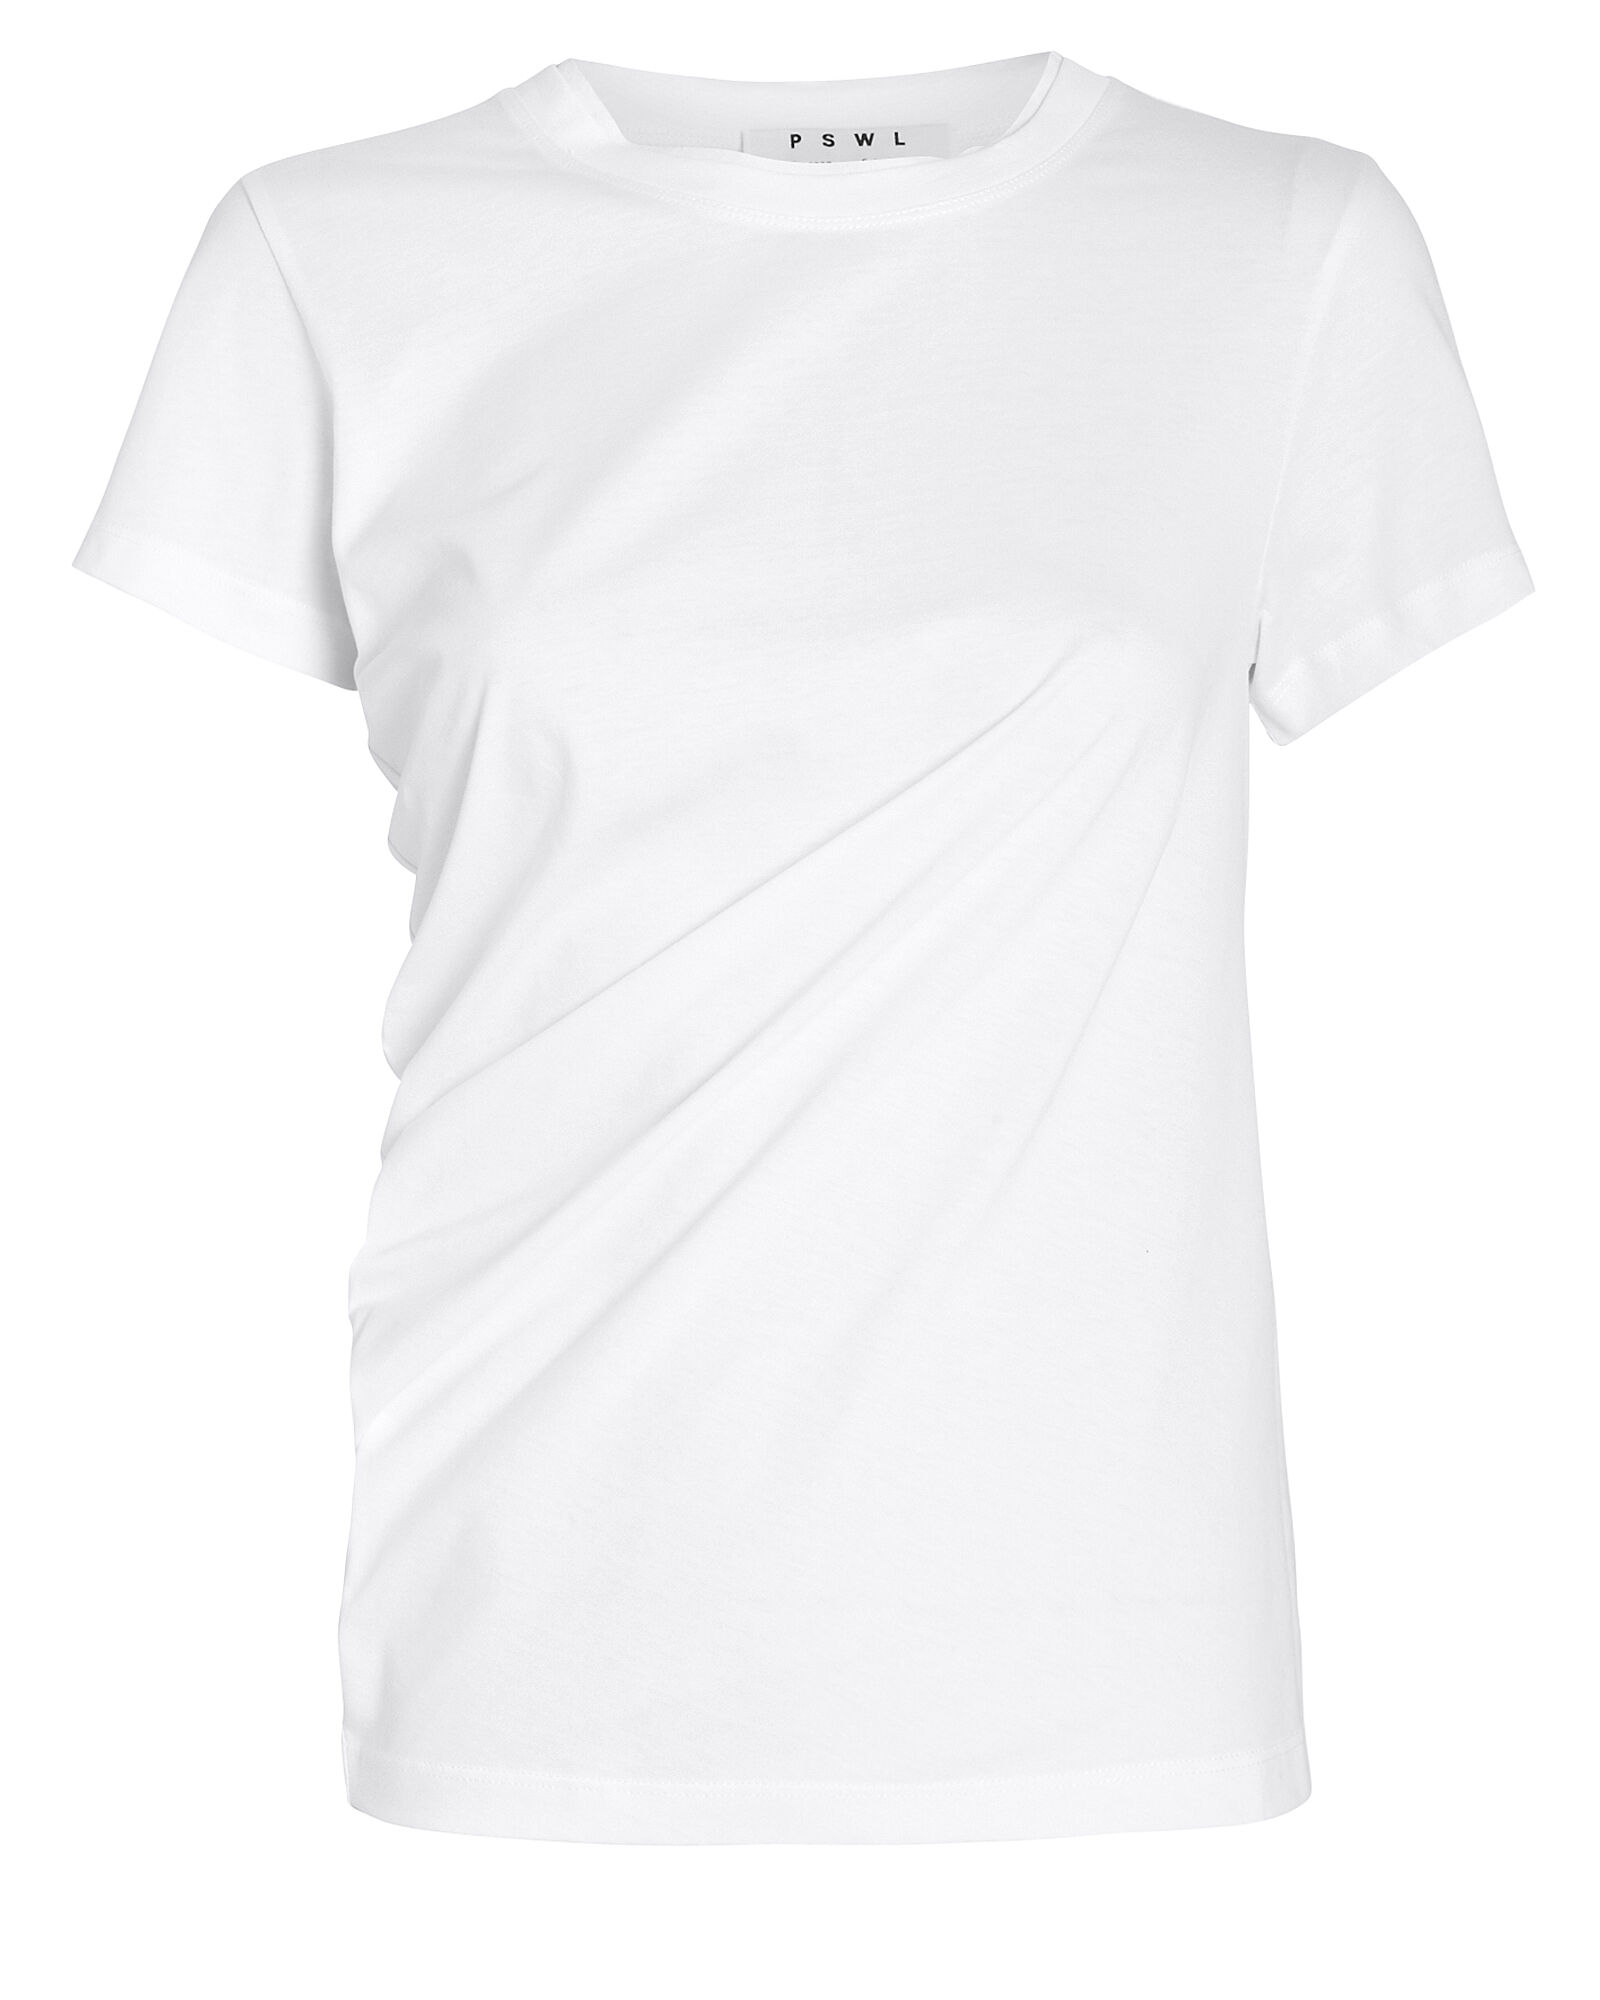 Twisted Jersey T-Shirt, WHITE, hi-res